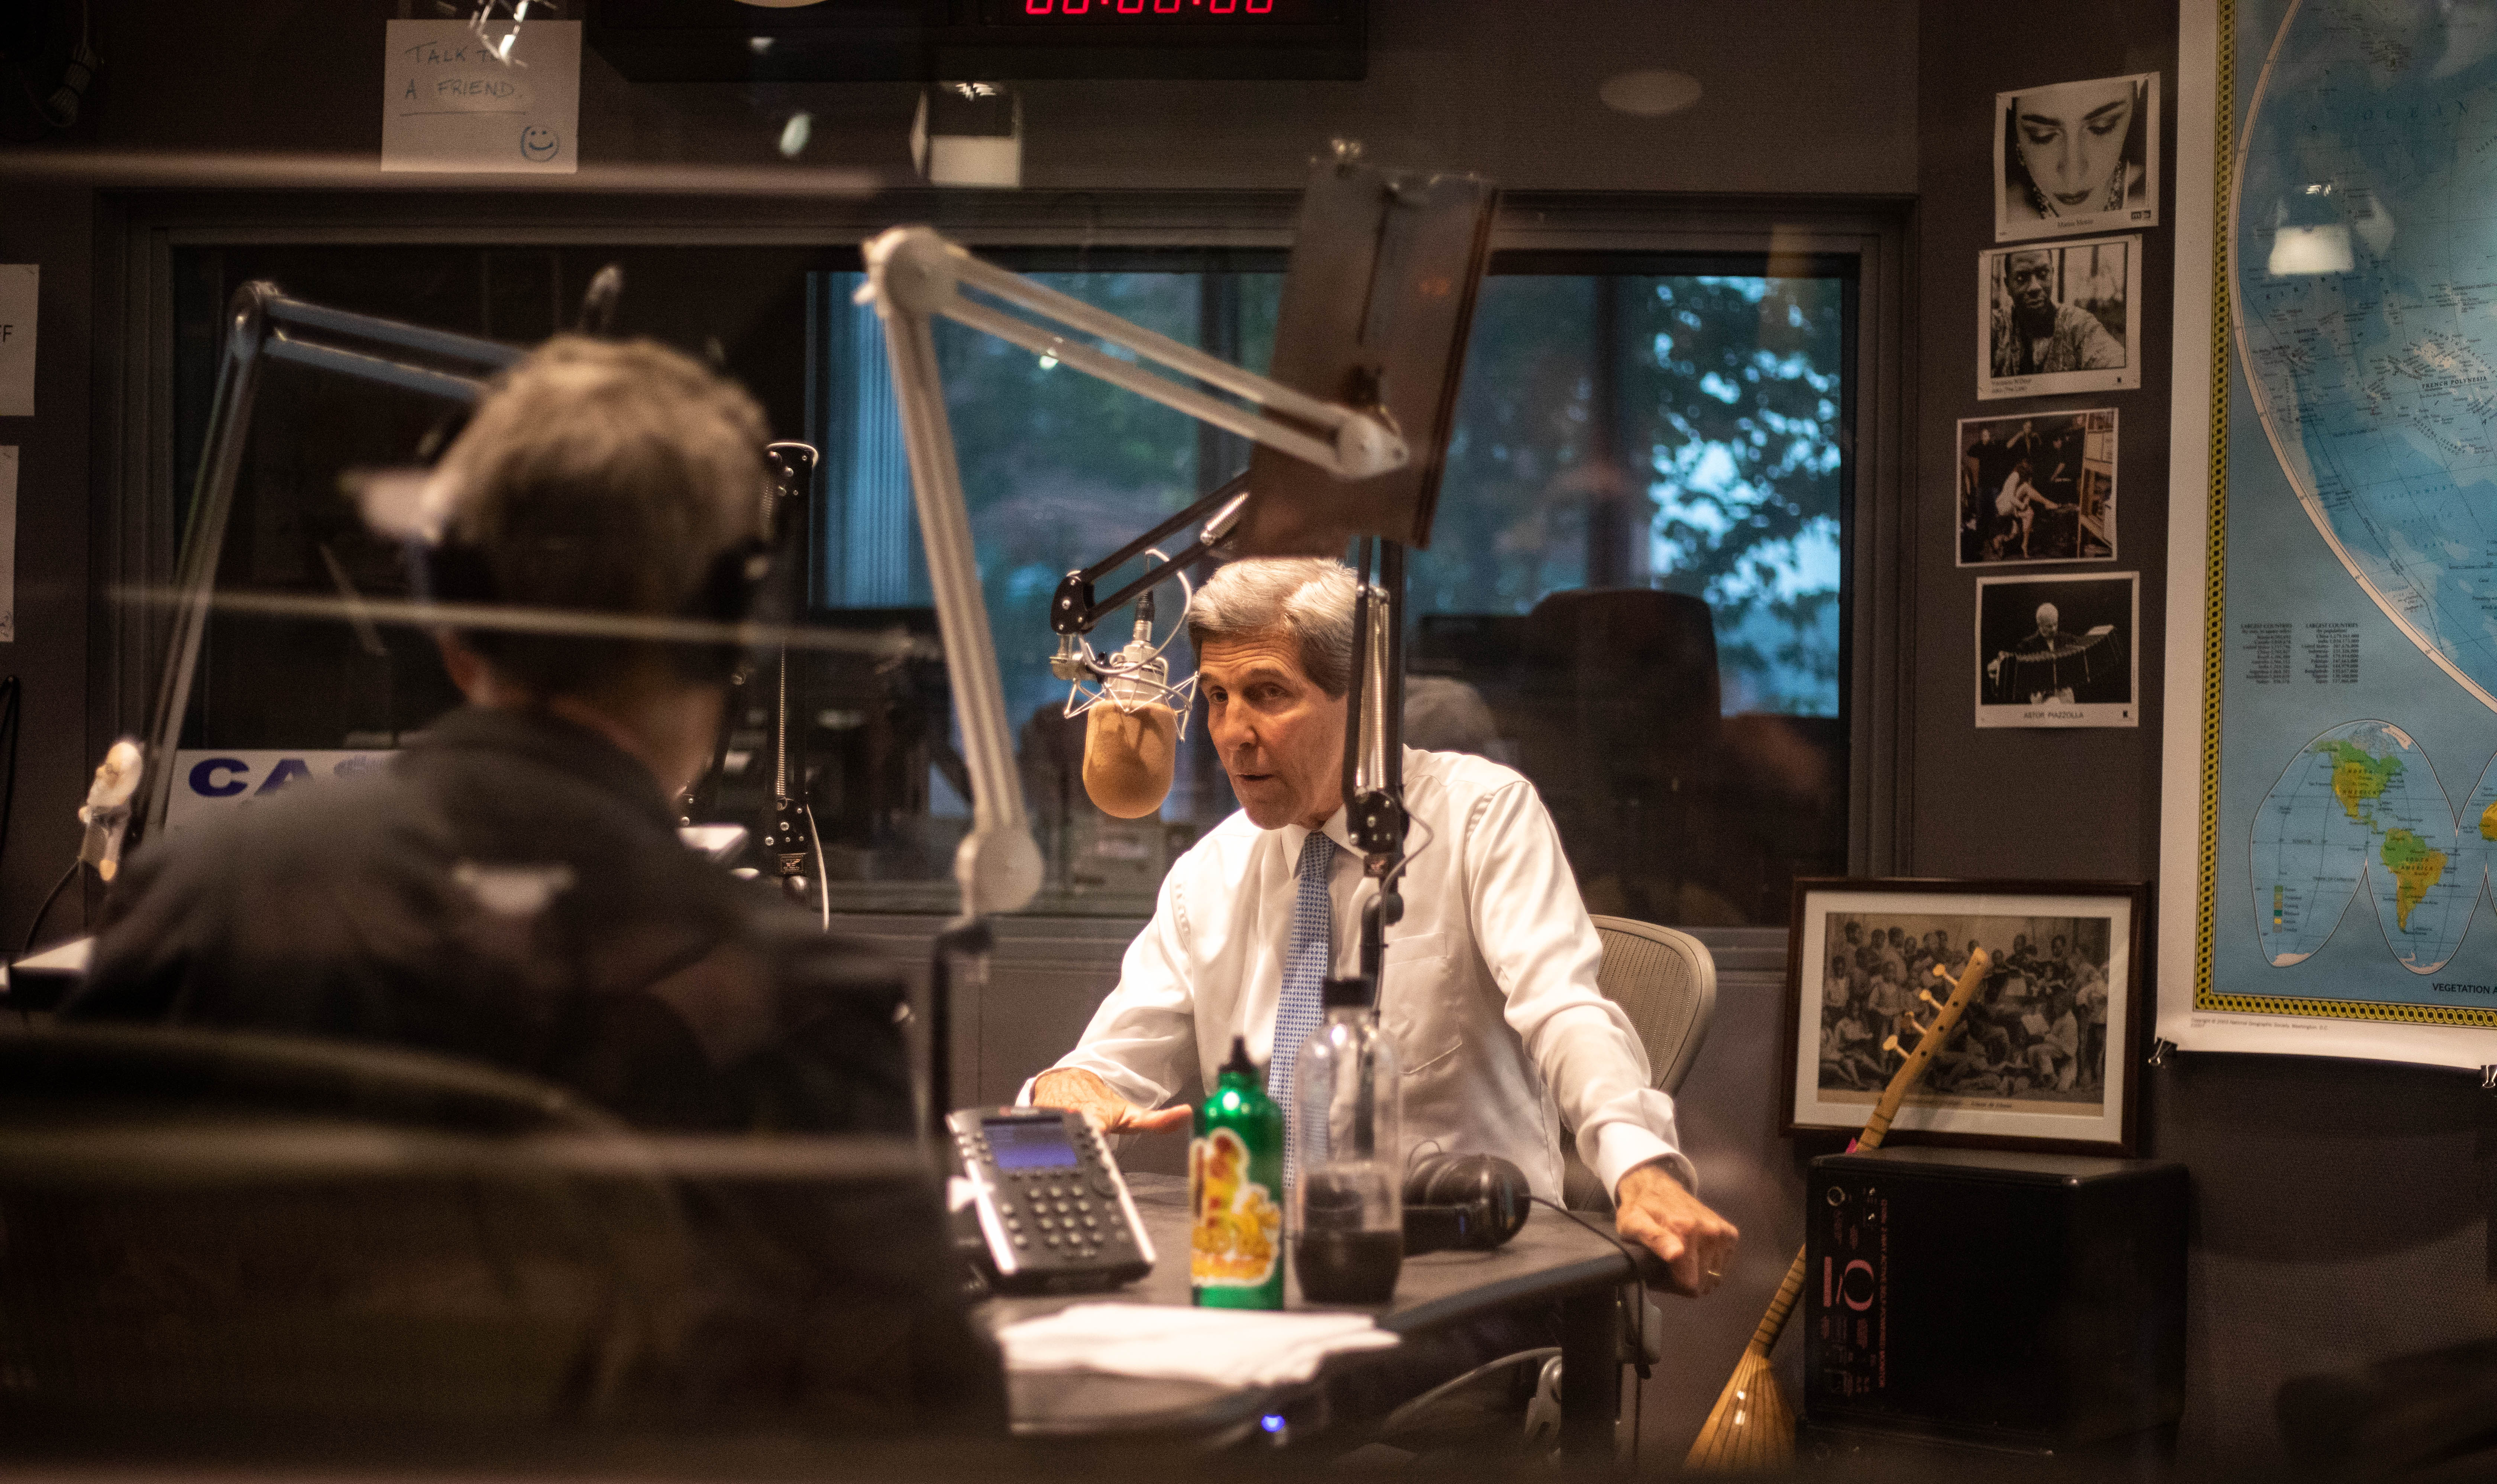 John Kerry stands behind the mic in The World studio